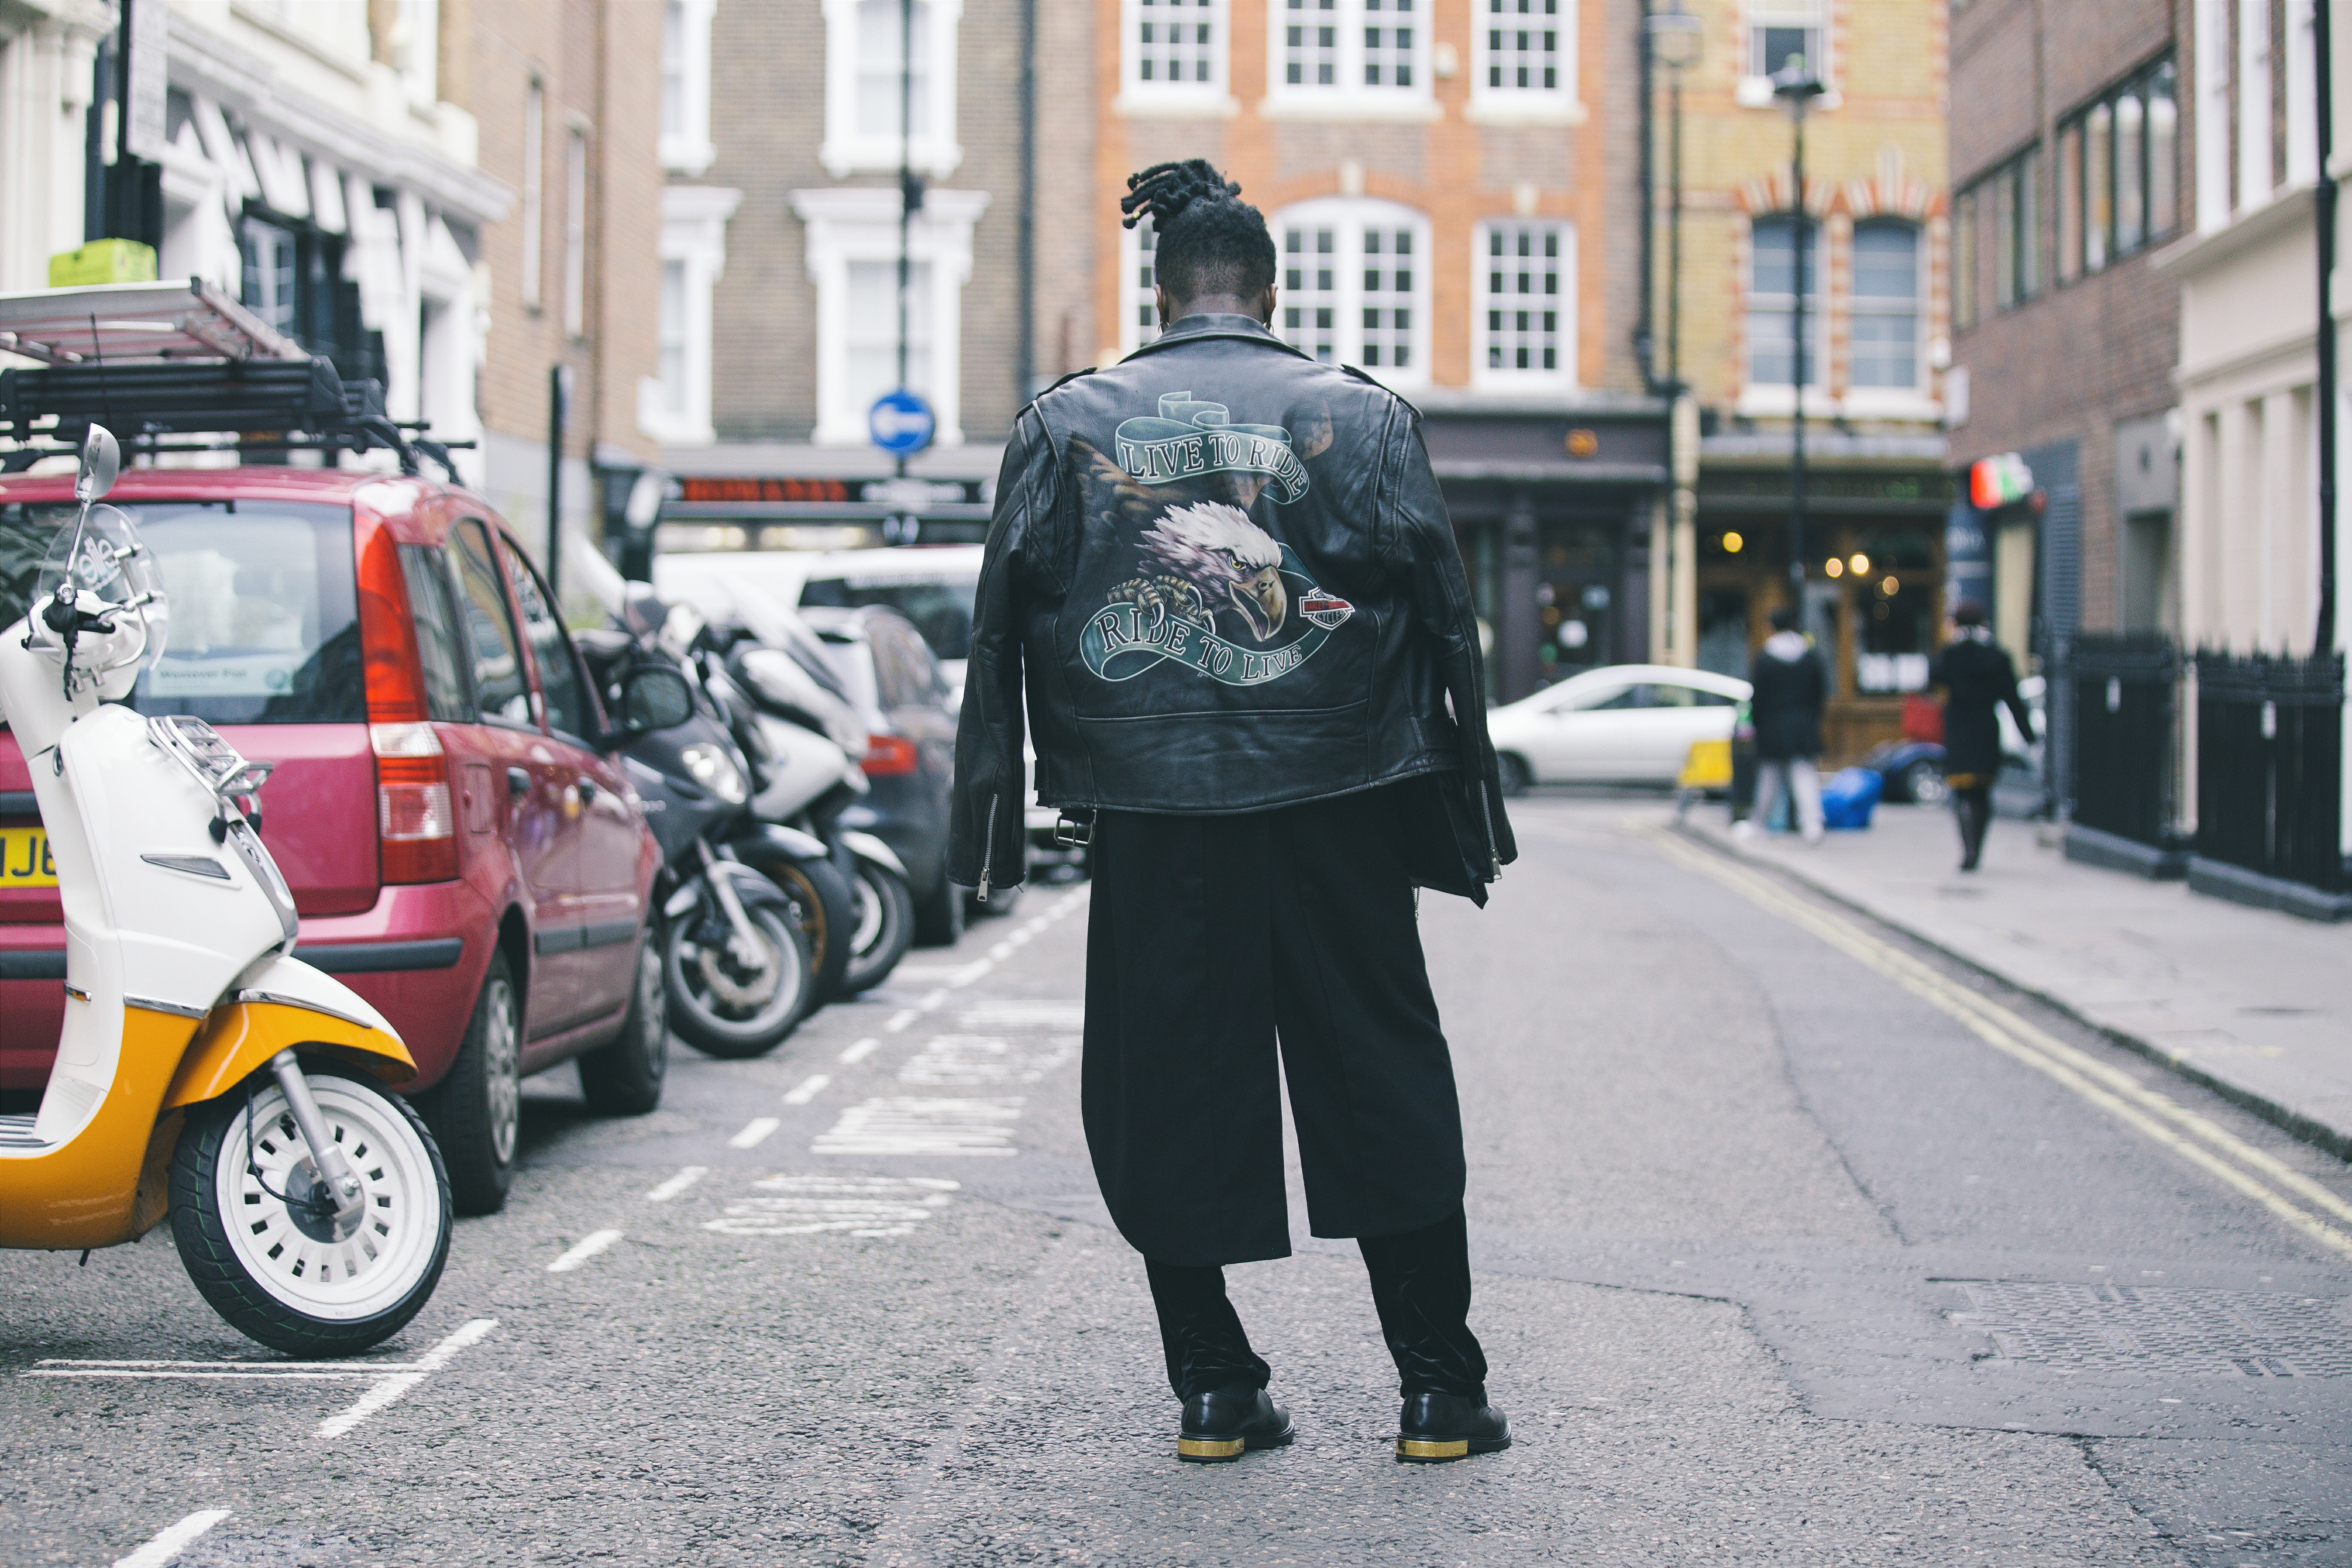 person wearing black jacket on road